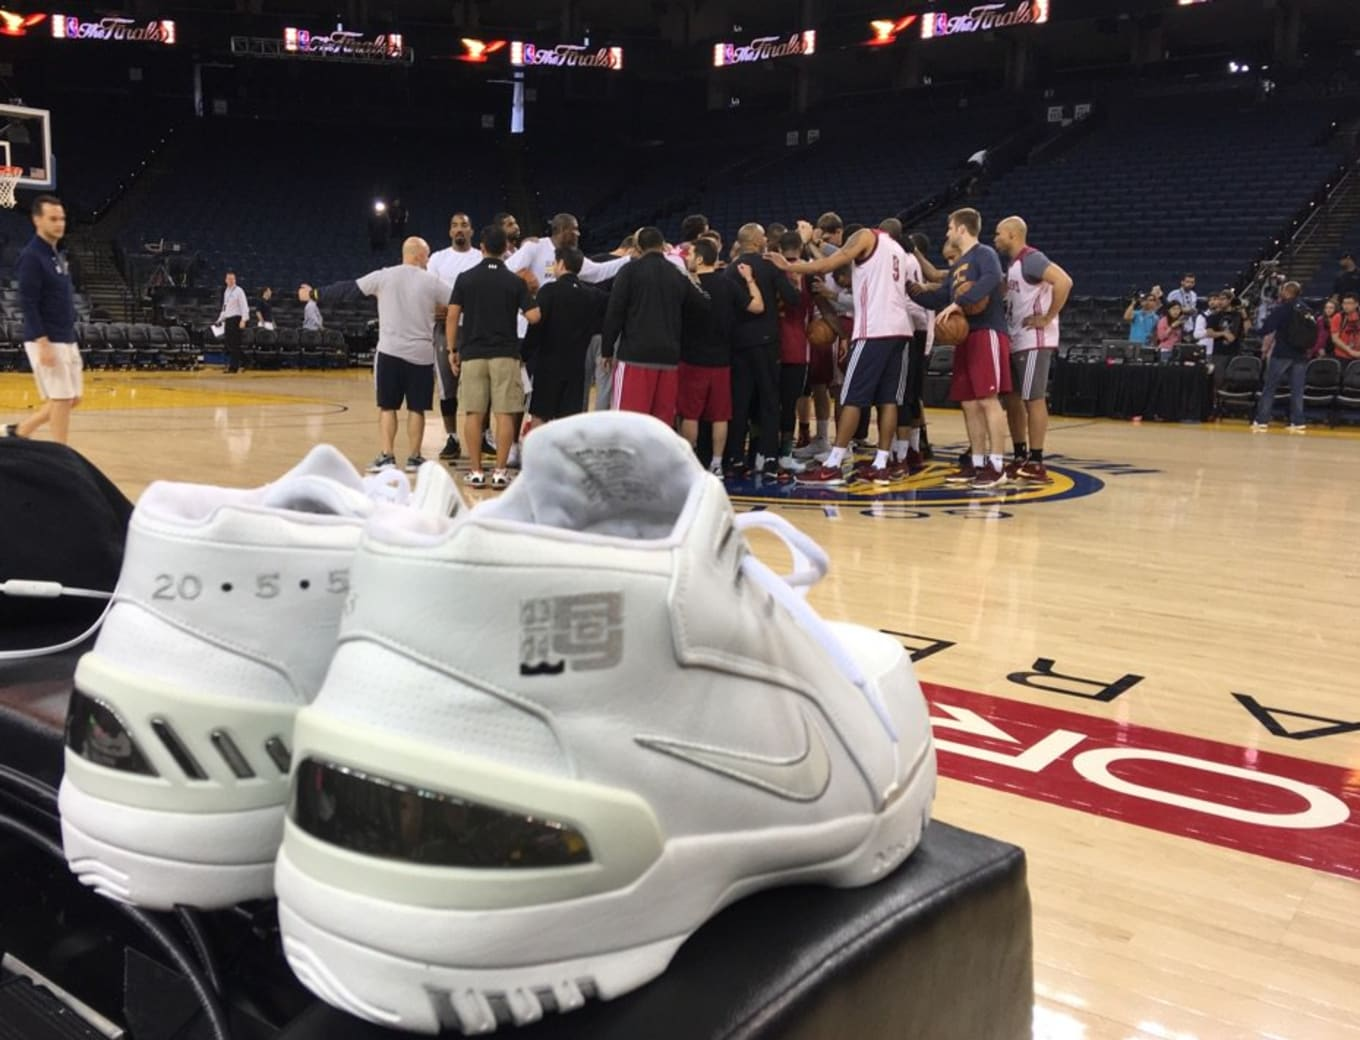 LeBron James Brought His Rookie Sneakers to the NBA Finals. Nike Air Zoom  Generation 1bd83d6c3e1e